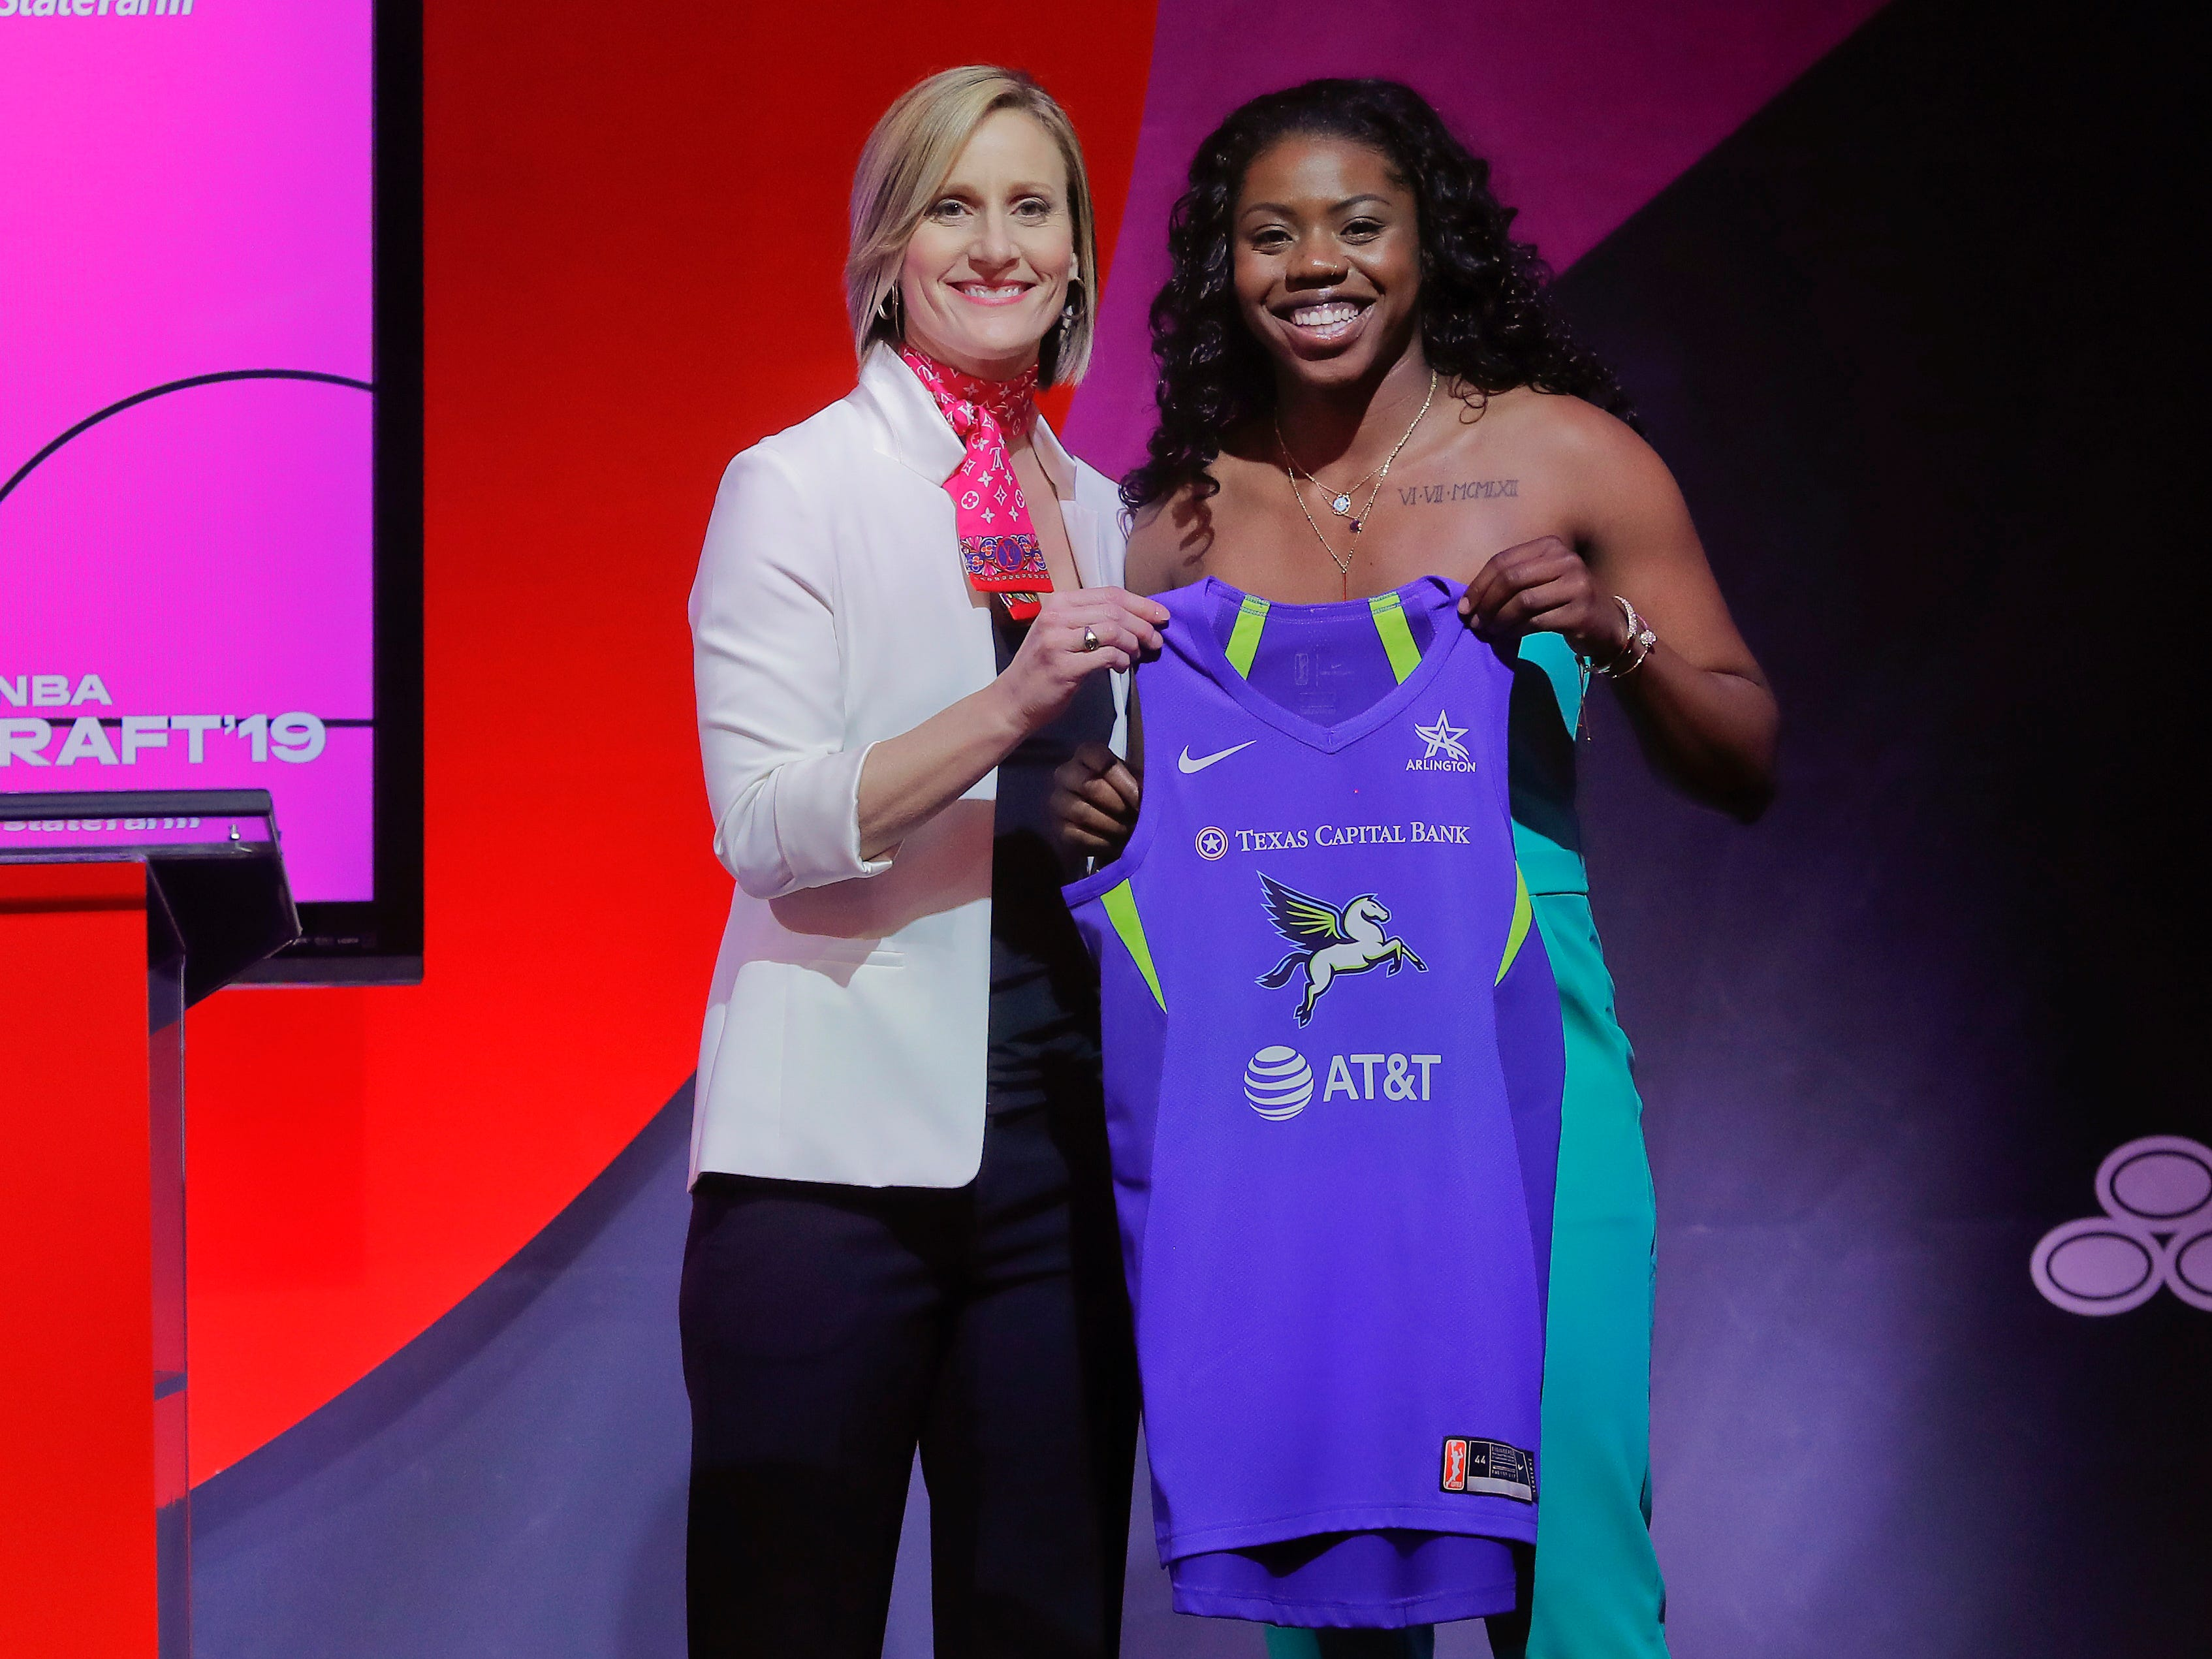 Notre Dame's Arike Ogunbowale poses for a photo with WNBA COO Christy Hedgpeth after being selected by the Dallas Wings as the fifth overall pick in the WNBA draft.